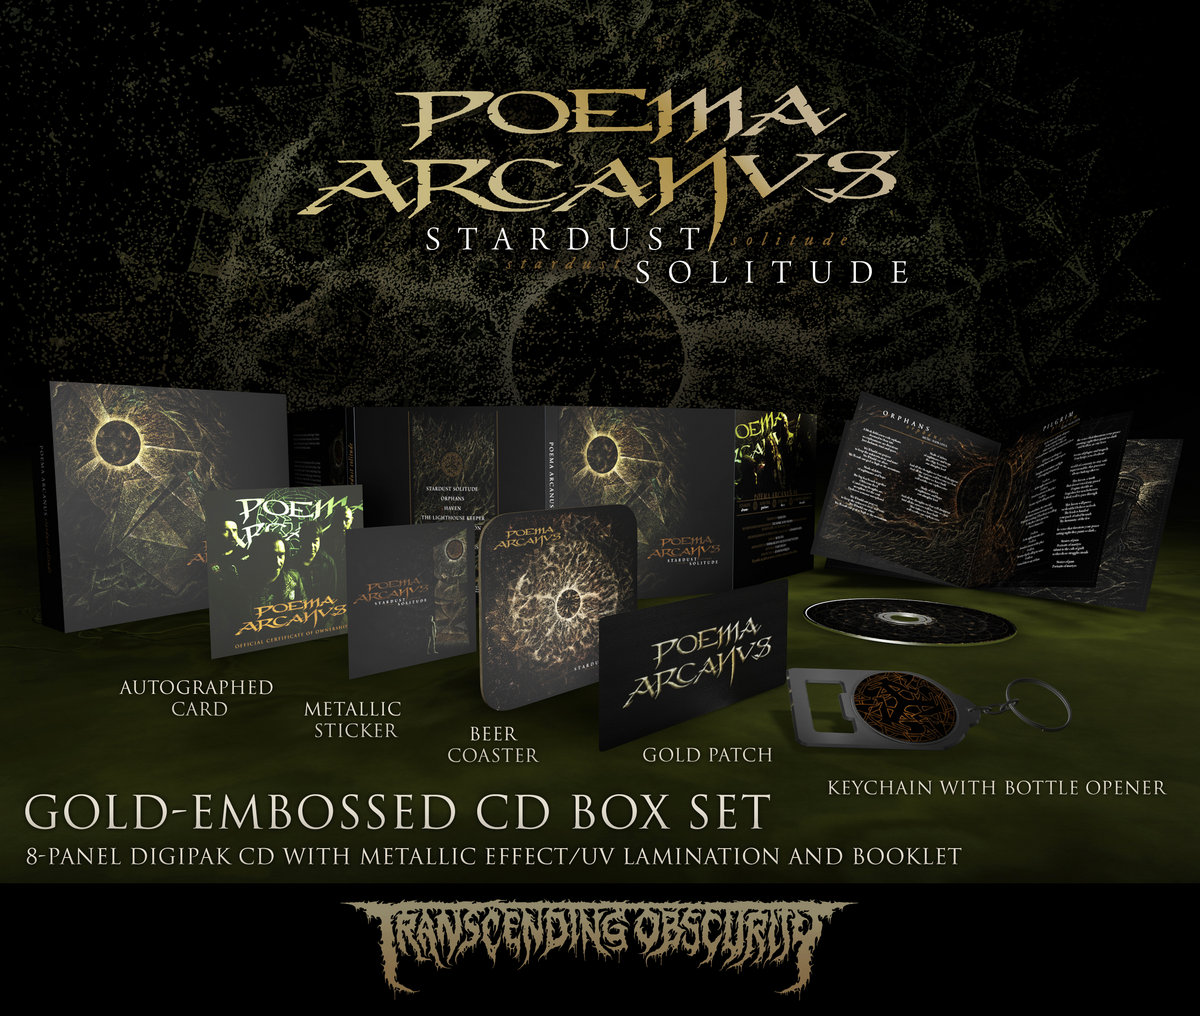 POEMA ARCANVS - Autographed Gold-embossed CD Box Set (Limited to 100)